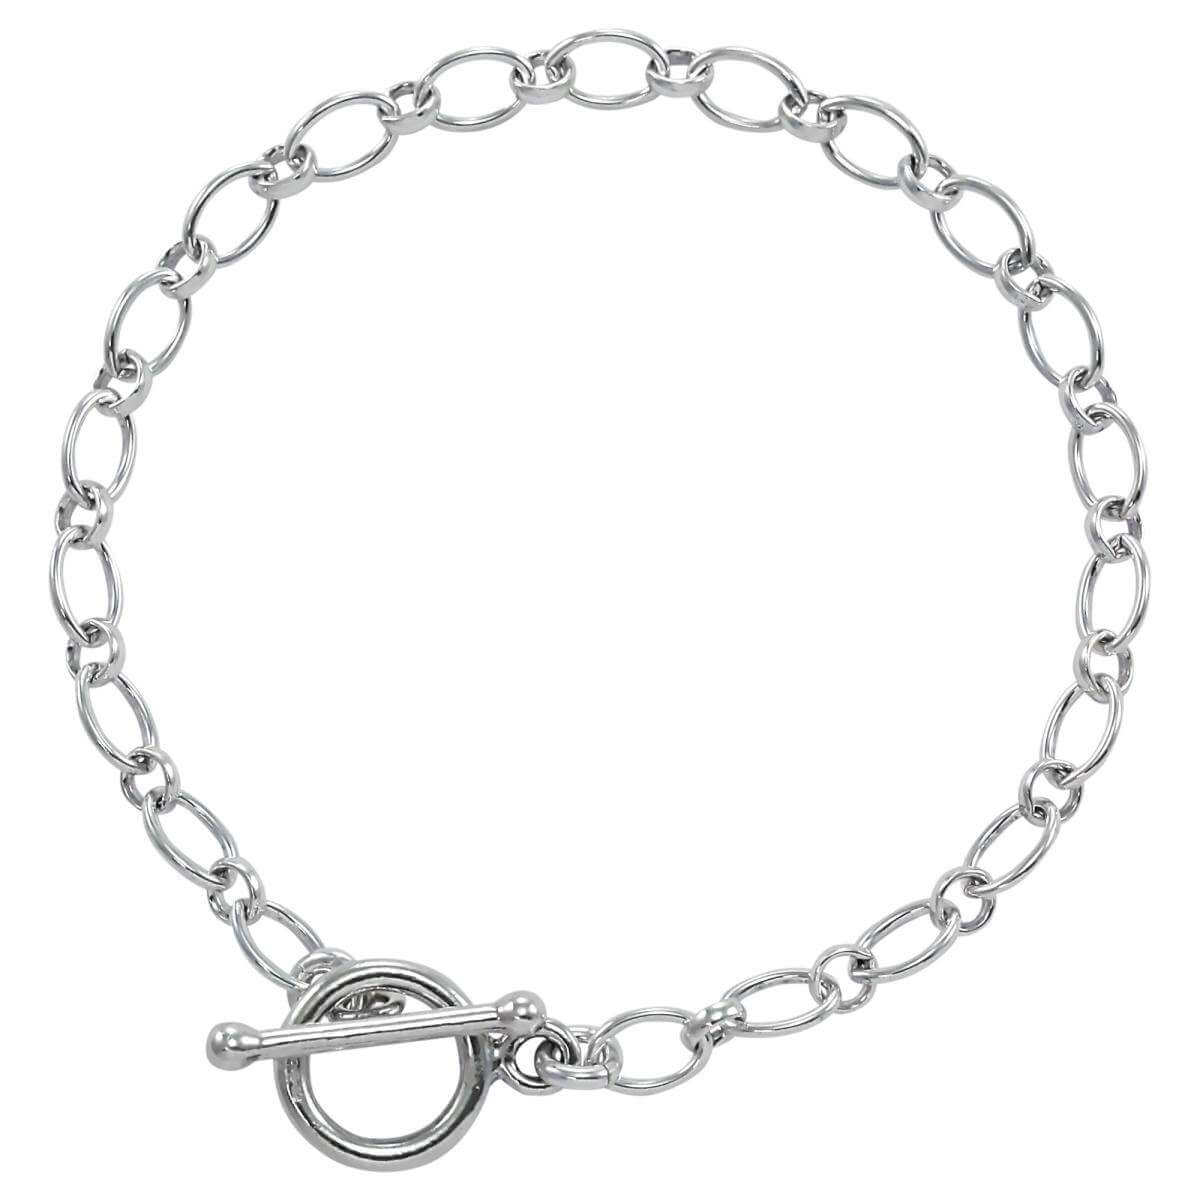 Sterling Silver Long and Short Charm Bracelet